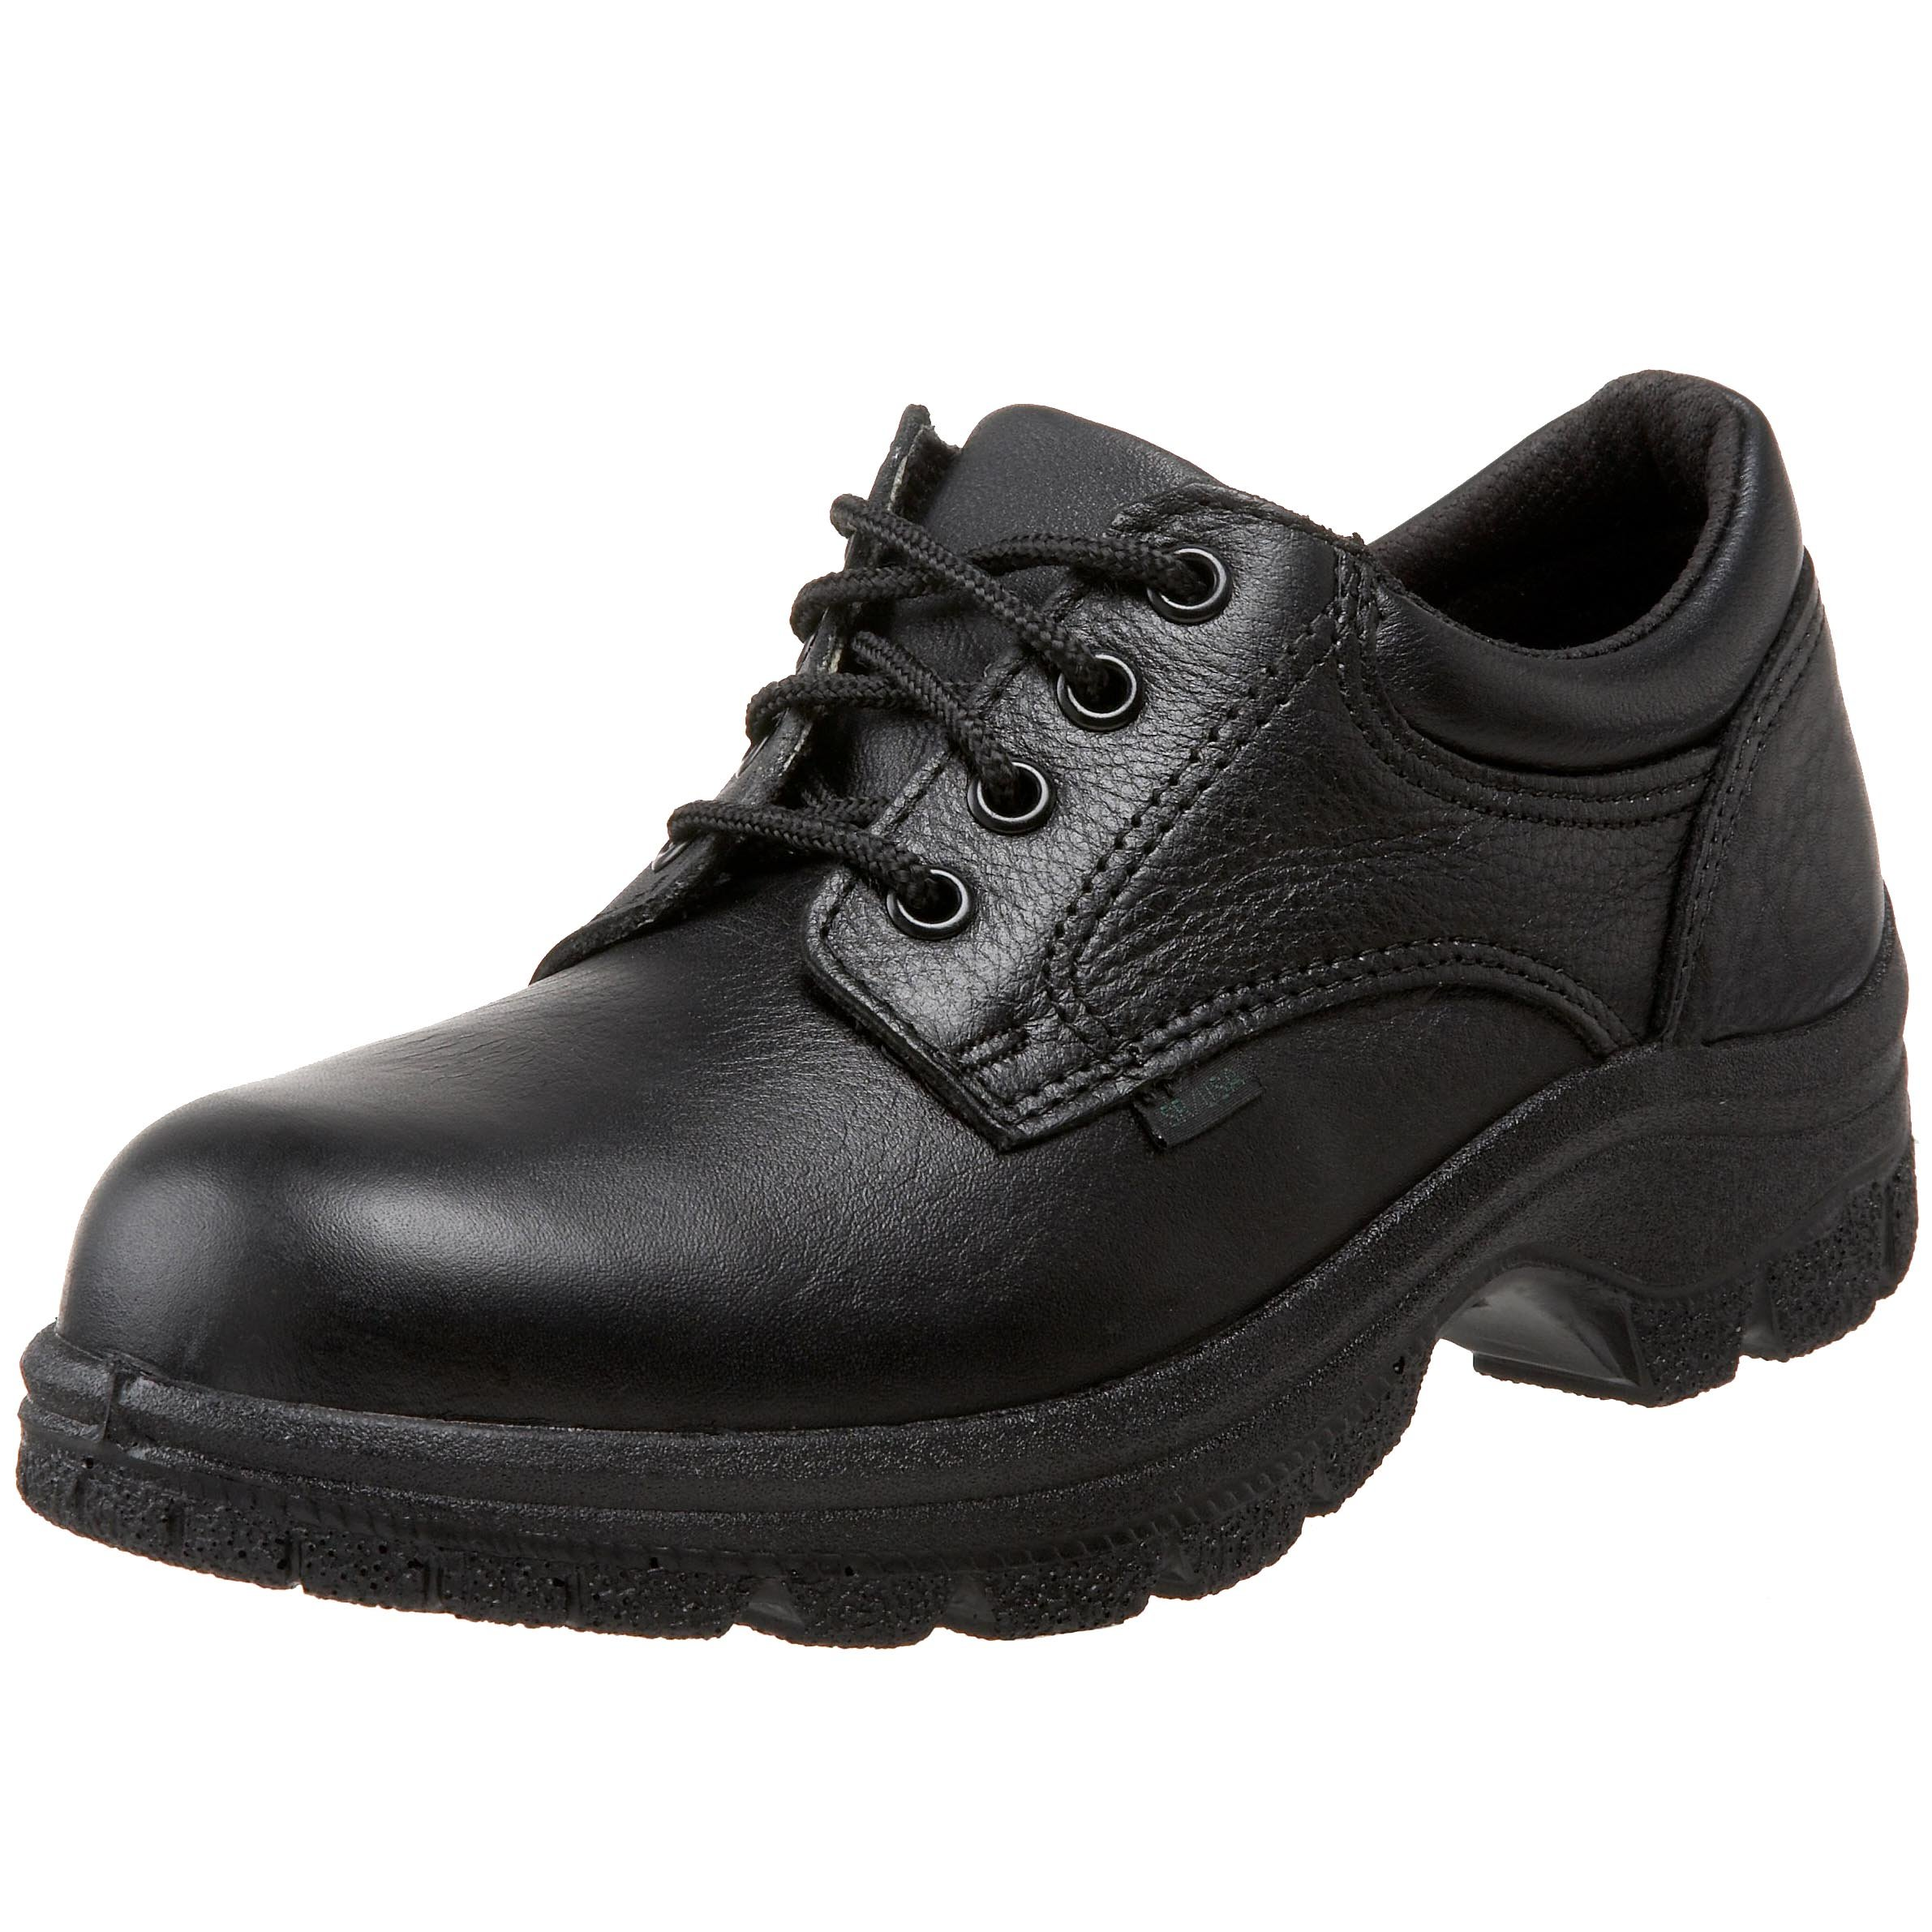 Thorogood Women's Soft Streets Oxford,Black,6 M US